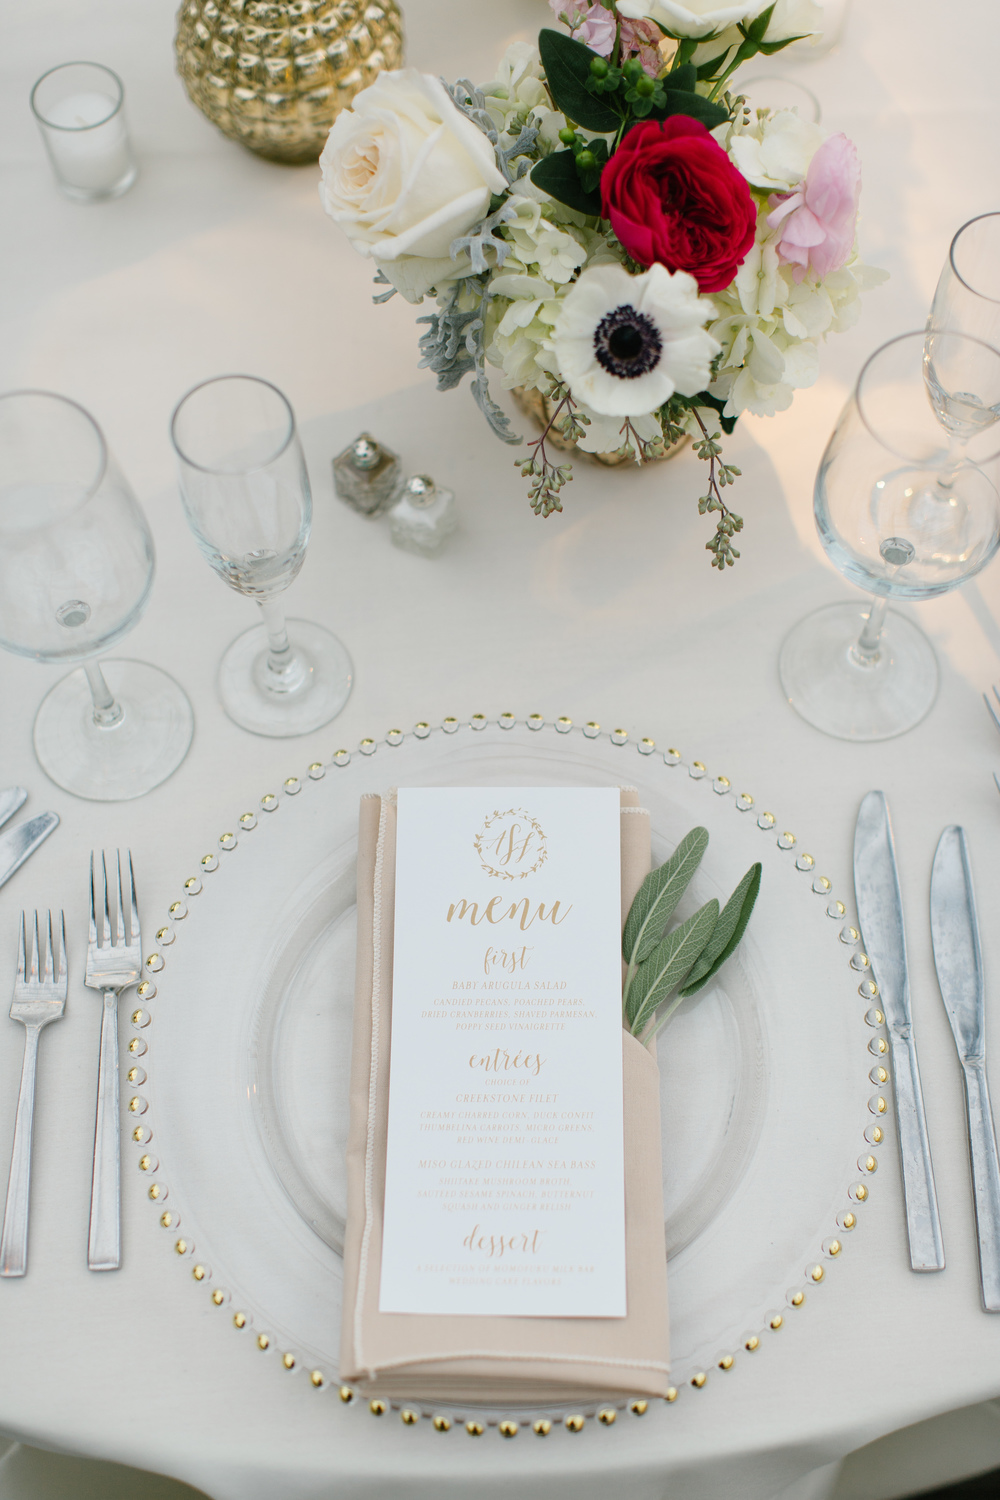 Photo: Becka Pillmore Photography /  Florals: Fleur De Lis /  Menu: Chick Invitations / Venue: The Horticultural Center/ Starr Catering/   Styling & Planning: The Styled Bride